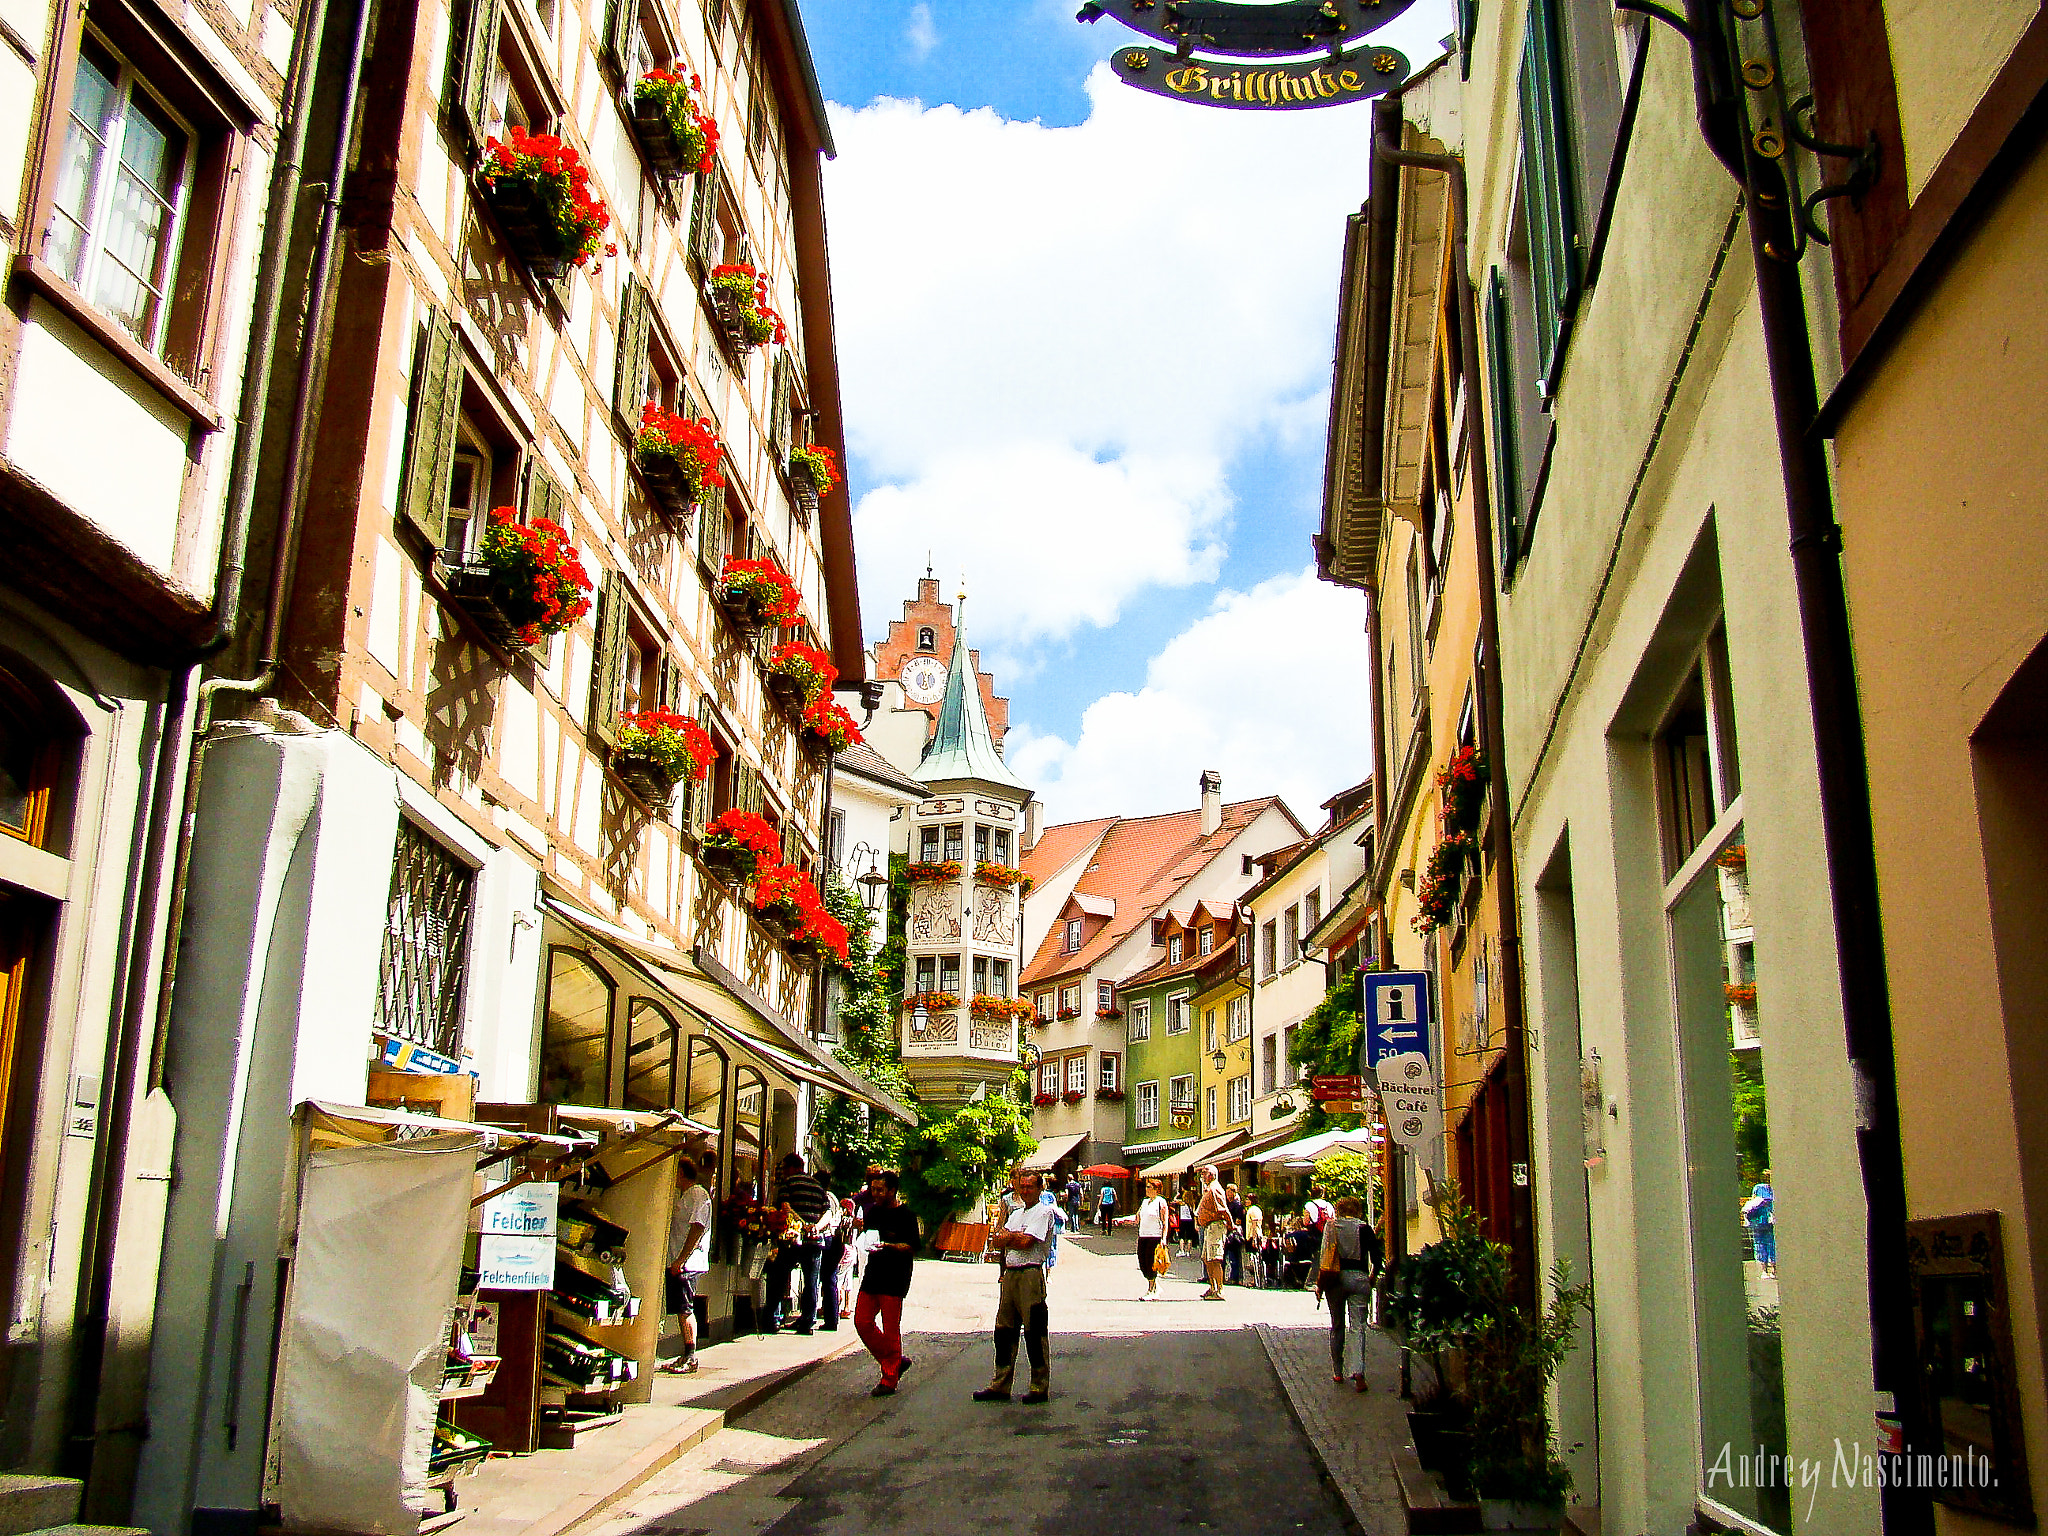 Photograph Meersburg Colorful Street by Andrey Nascimento on 500px